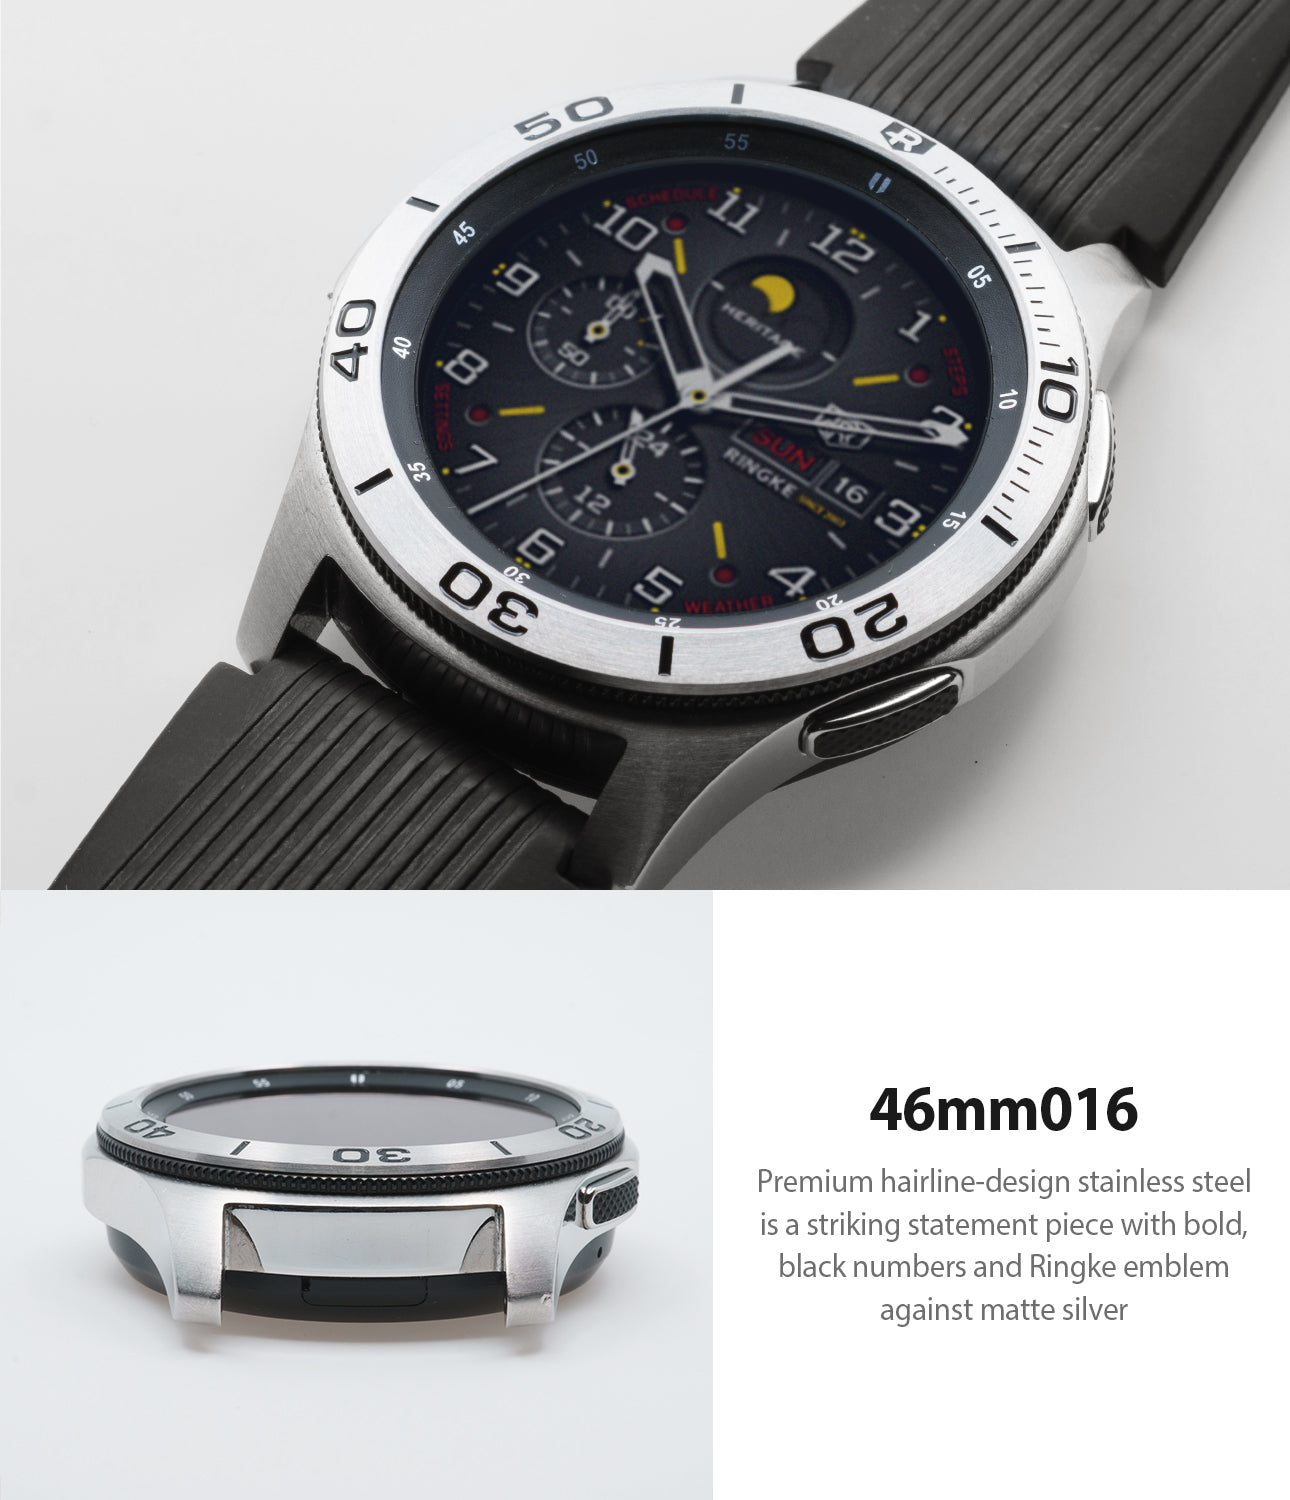 premium hairline design stainless steel with bold black number markings with ringke emblem against matte silver